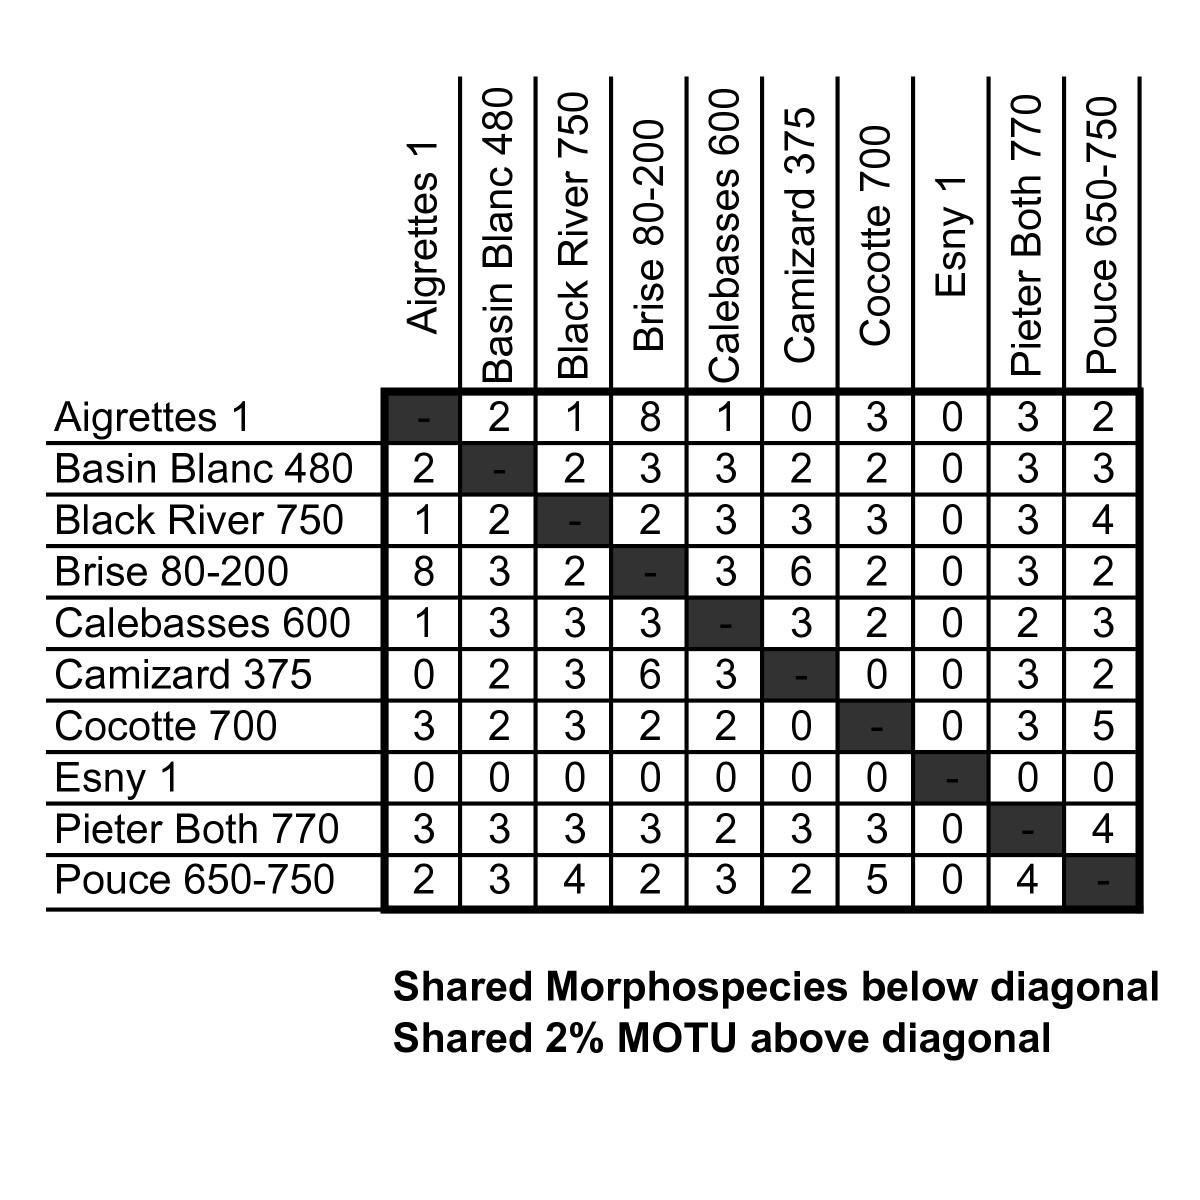 http://static-content.springer.com/image/art%3A10.1186%2F1742-9994-6-31/MediaObjects/12983_2009_Article_119_Fig2_HTML.jpg